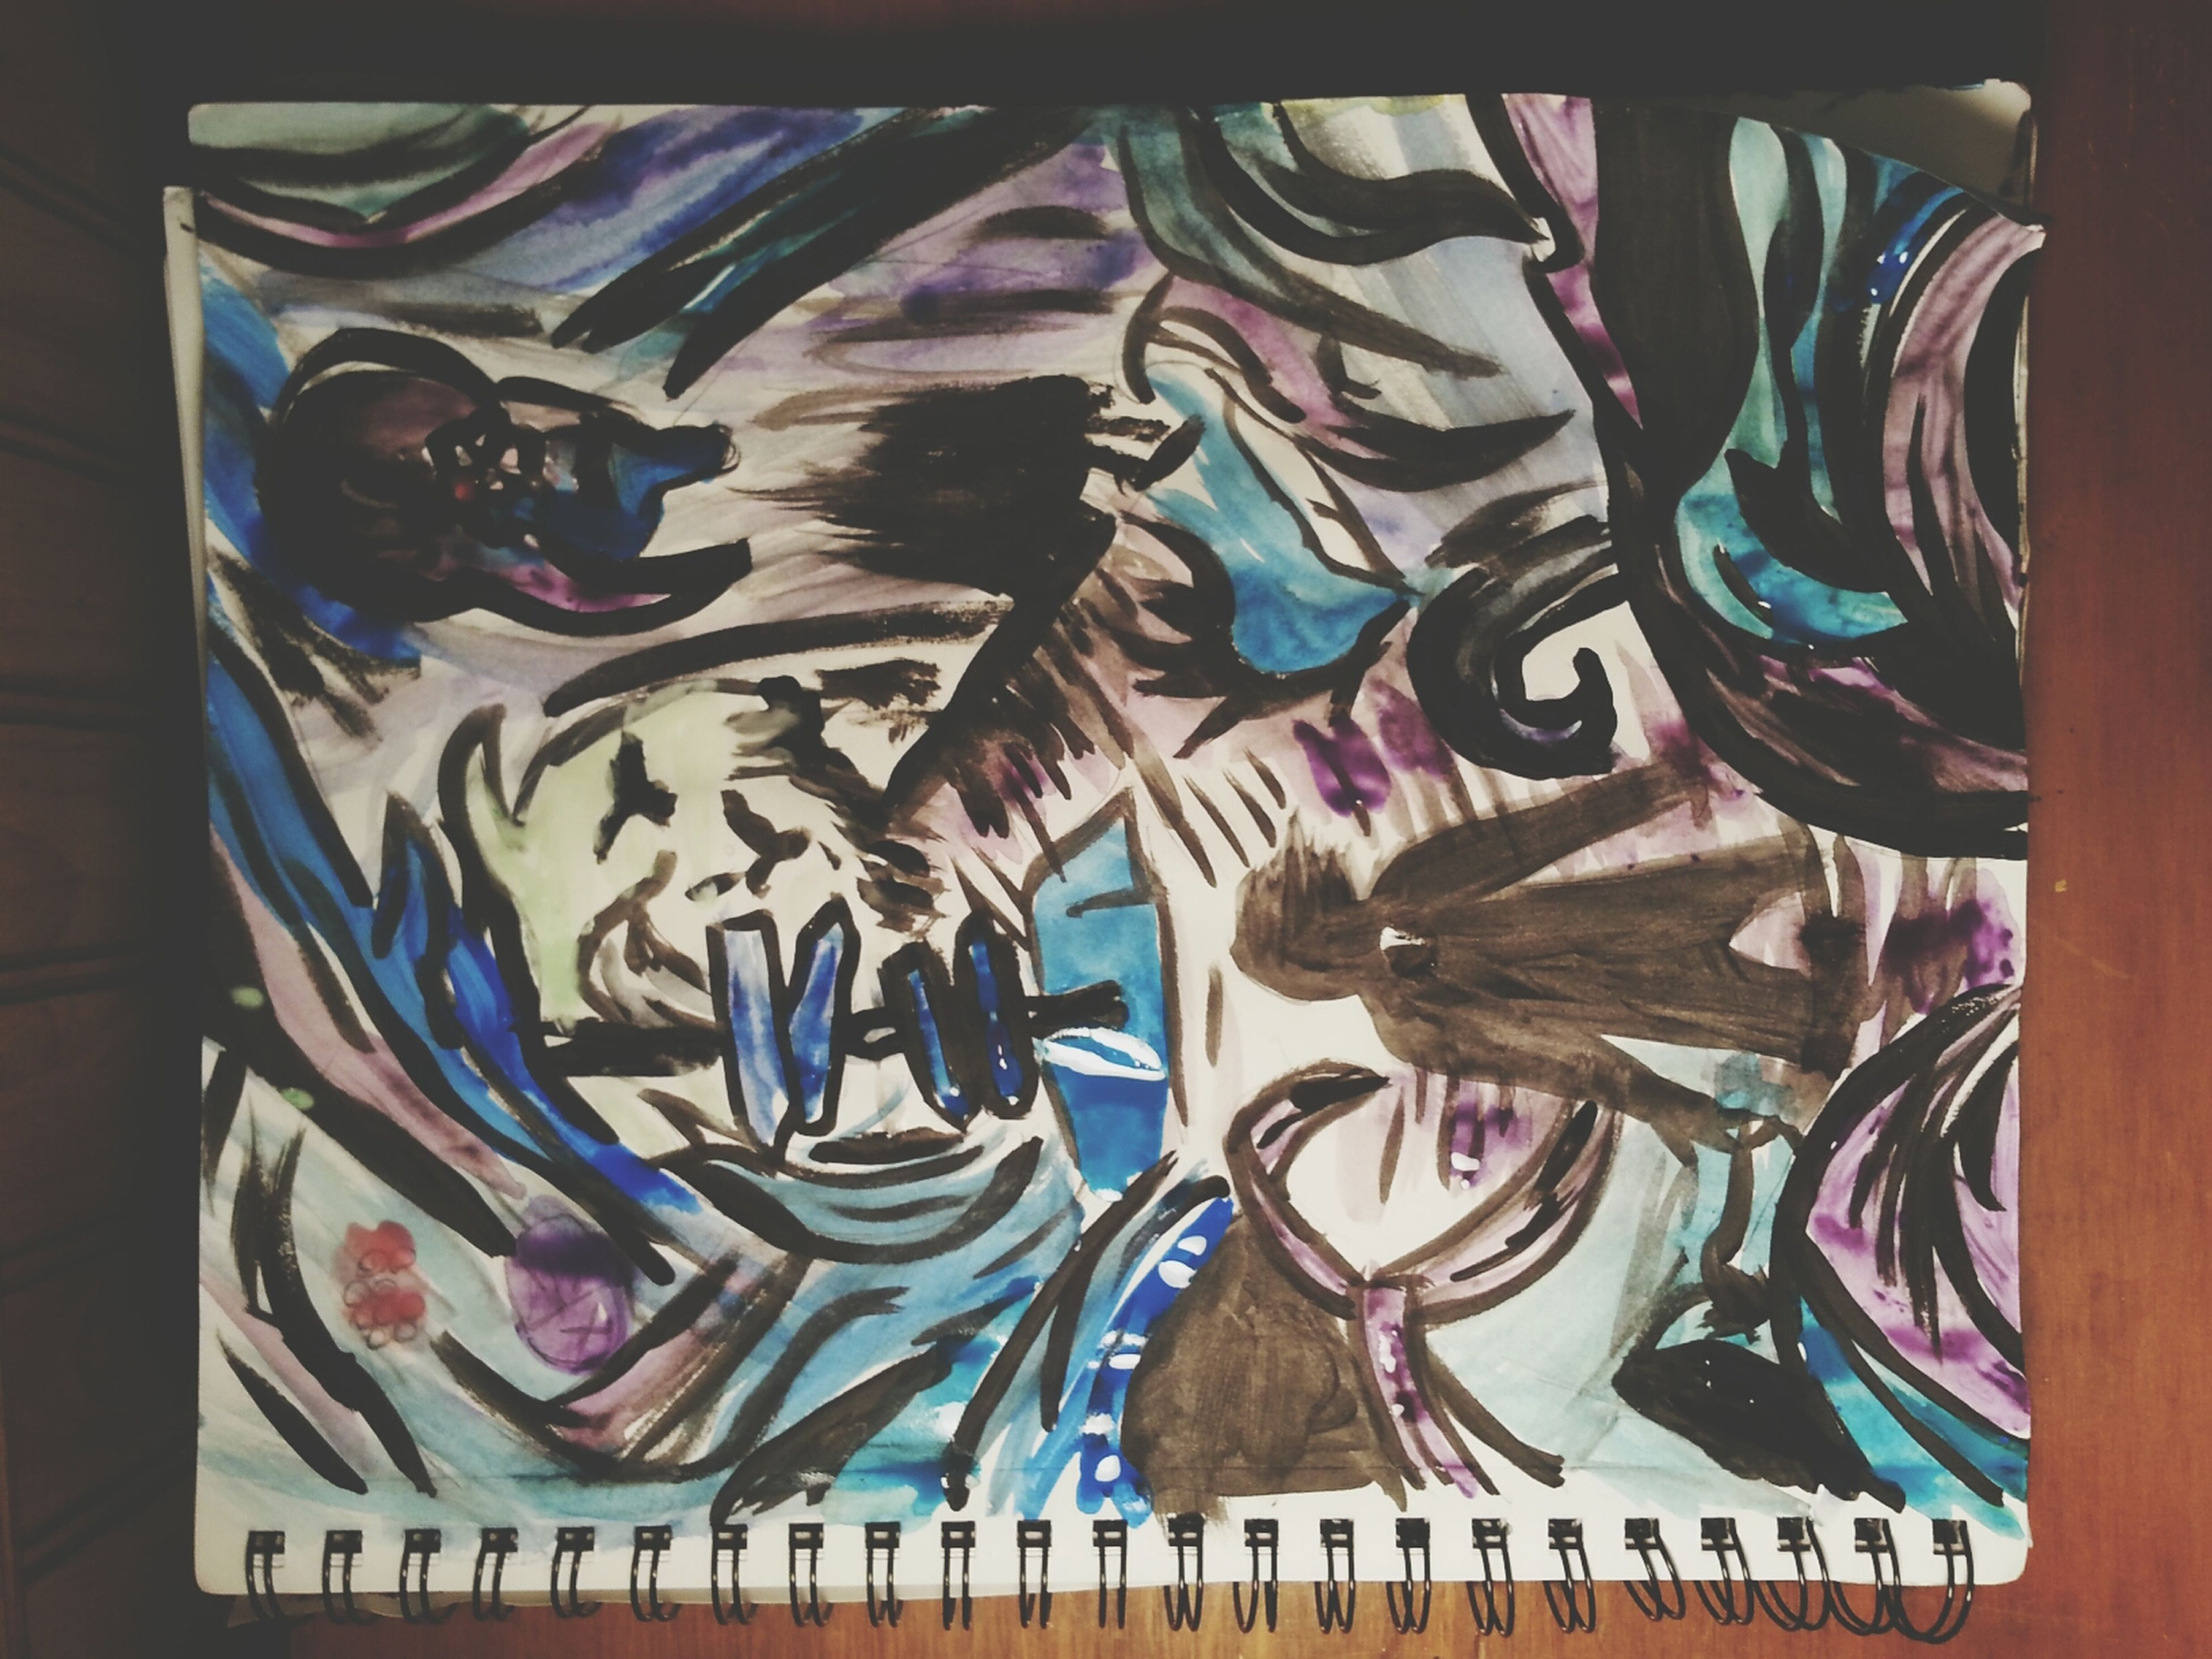 art and craft, art, creativity, indoors, graffiti, design, human representation, multi colored, auto post production filter, craft, animal representation, transfer print, pattern, wall - building feature, built structure, no people, architecture, painting, street art, mural